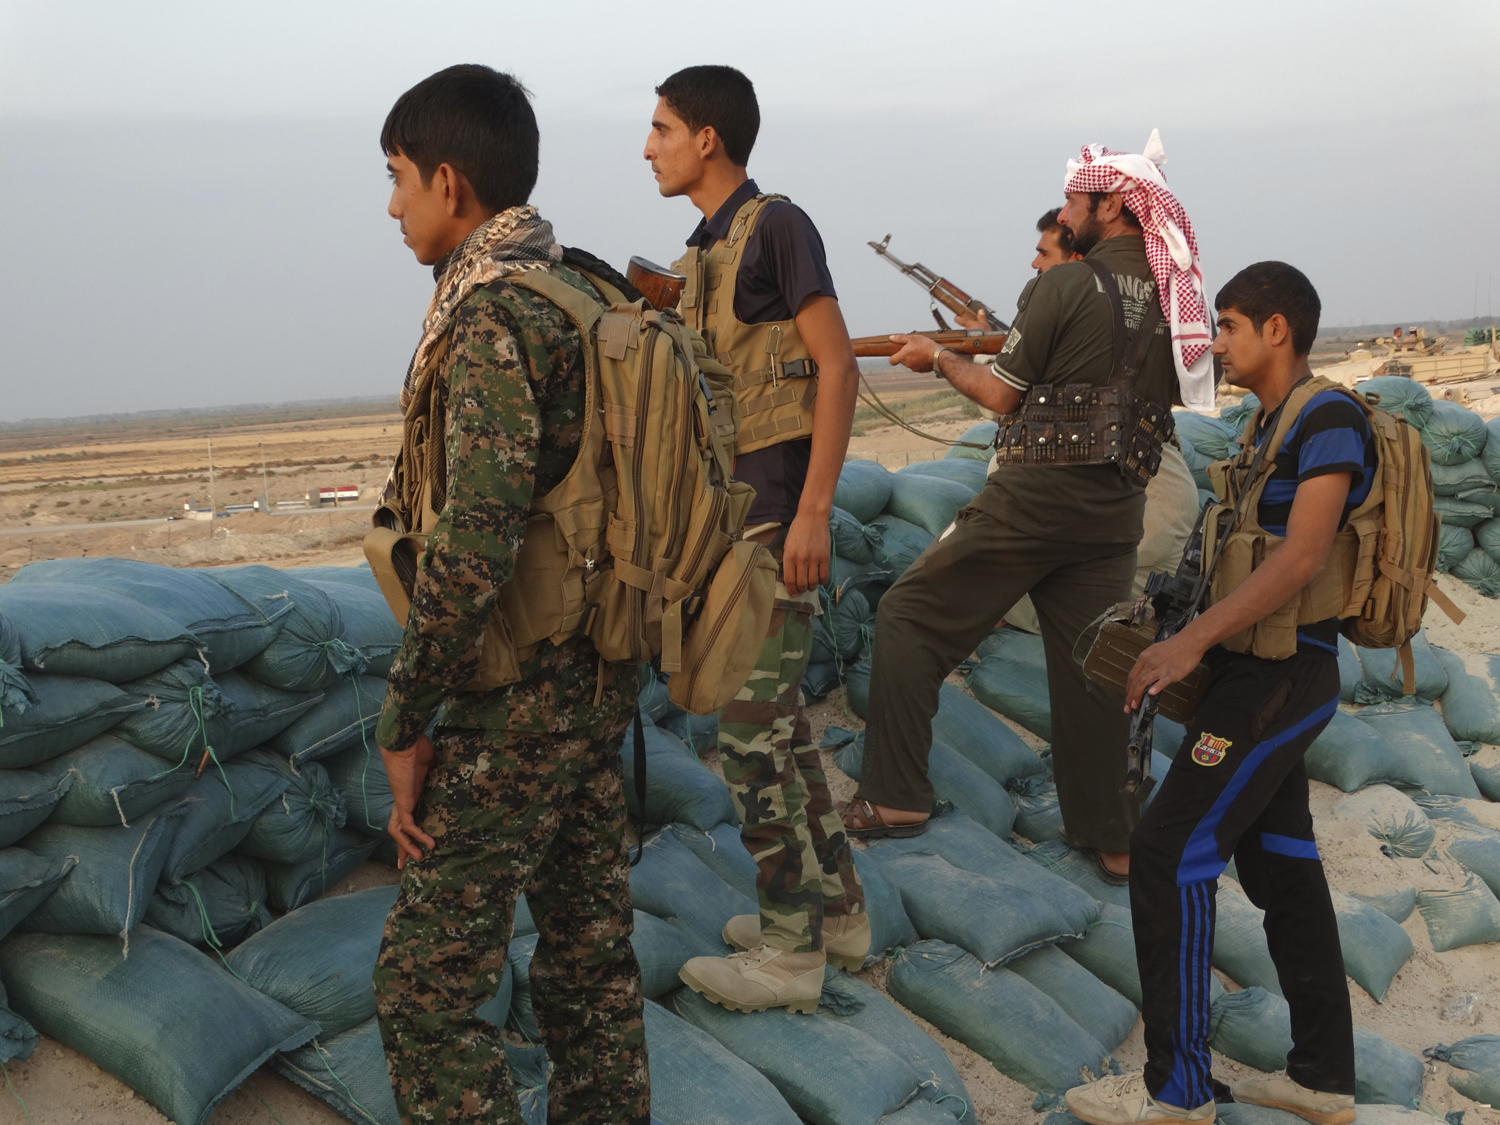 Tribal fighters look on as they take part in an intensive security deployment against ISIS militants in the town of Amriyat al-Falluja,in Anbar province on October 31, 2014.